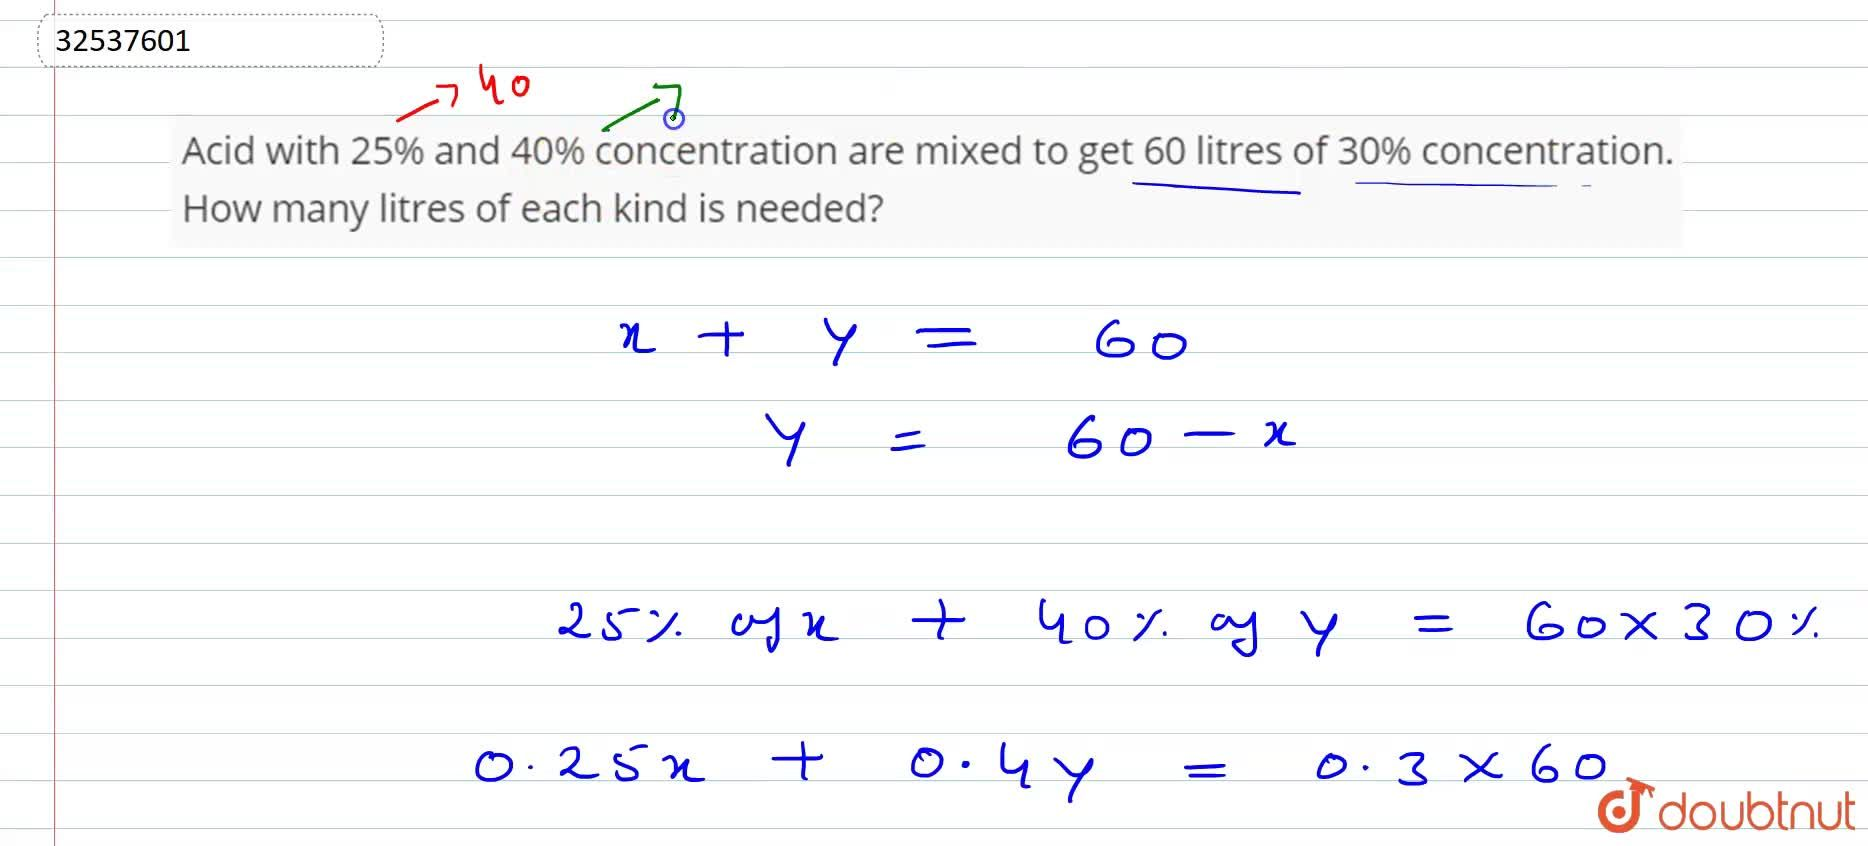 Acid with 25% and 40% concentration are mixed to get 60 litres of 30% concentration. How many litres of each kind is needed?